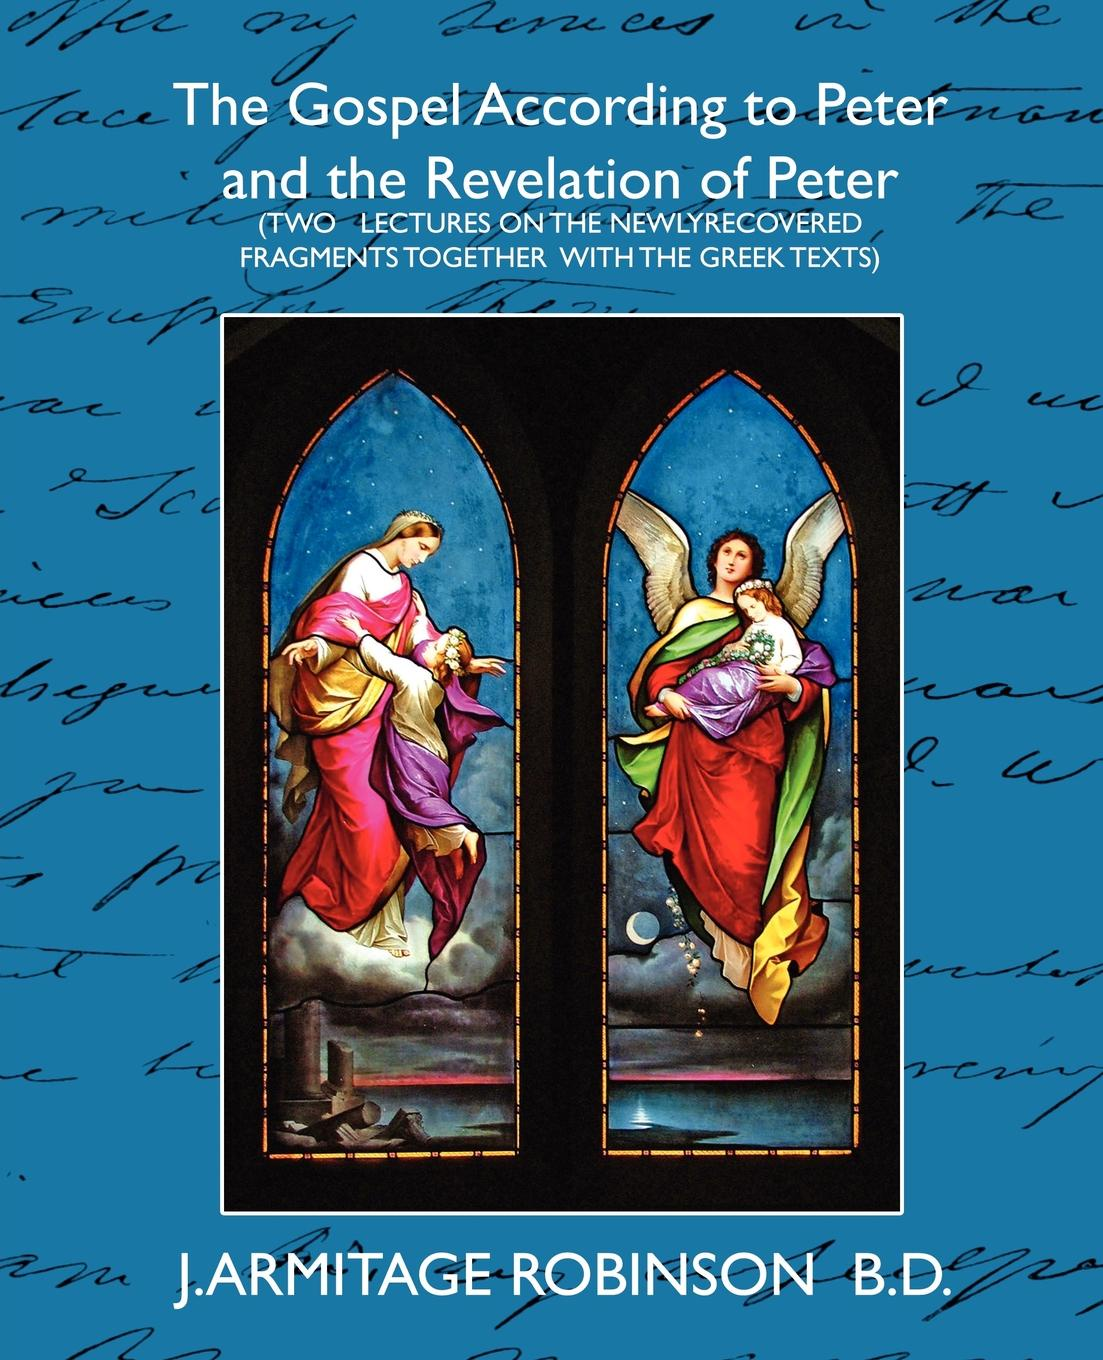 Armitage Rob J. Armitage Robinson B. D., J. Armitage Robinson B. D. The Gospel According to Peter and the Revelation of Peter peter morin j community ecology